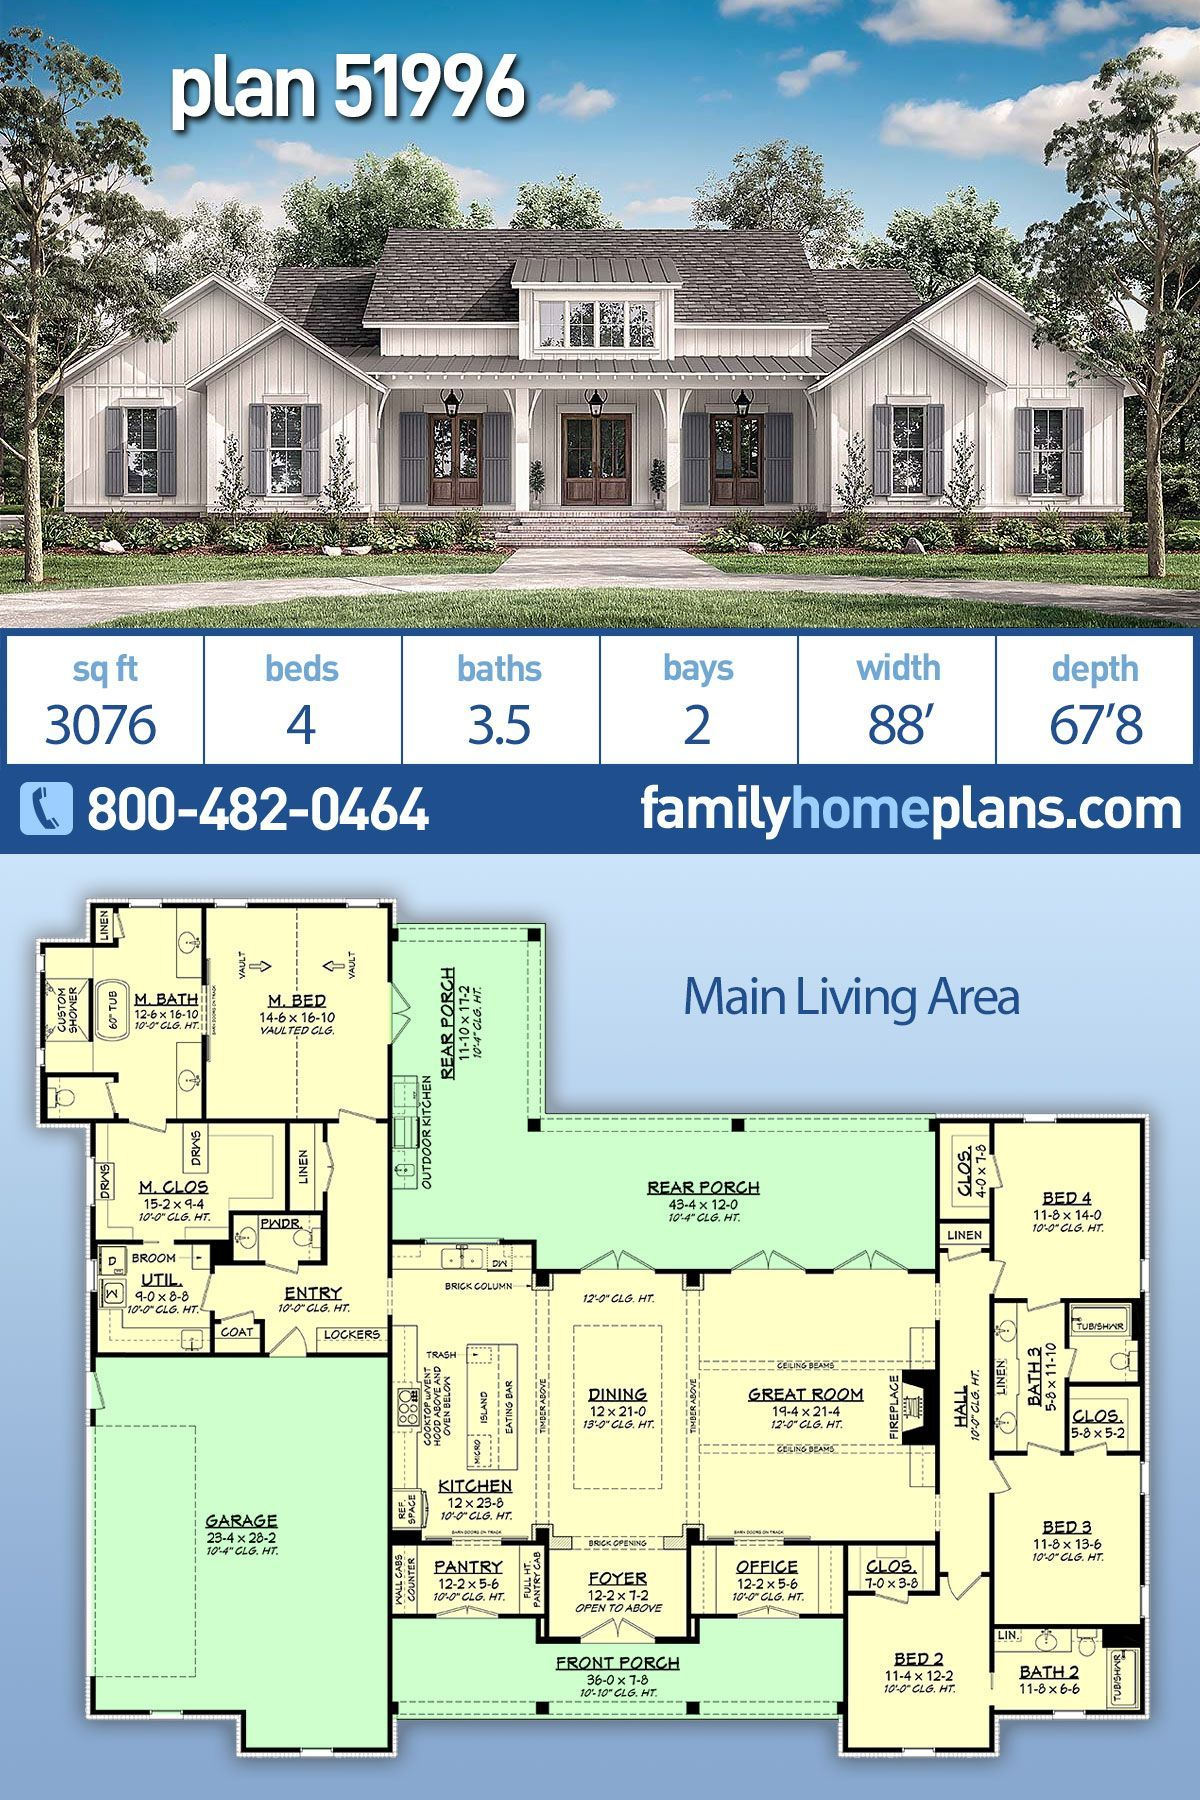 Country Style House Plan Number 51996 with 4 Bed, 4 Bath, 2 Car Garage NEW Modern Farmhouse by Award Winning Architectural Designer at Family Home Plans 4 Bedroom 3.5 Bath A NEW modern farmhouse house plan with 3076 square feet. A gorgeous 4-bedroom 3.5-bathroom home plan has a 2 car garage. Main living area features: large open floor plan in great room and formal dining room with wooden beams throughout. A gourmet kitchen with large central island and huge formal dining room has a pantry and of #farmhousediningroom